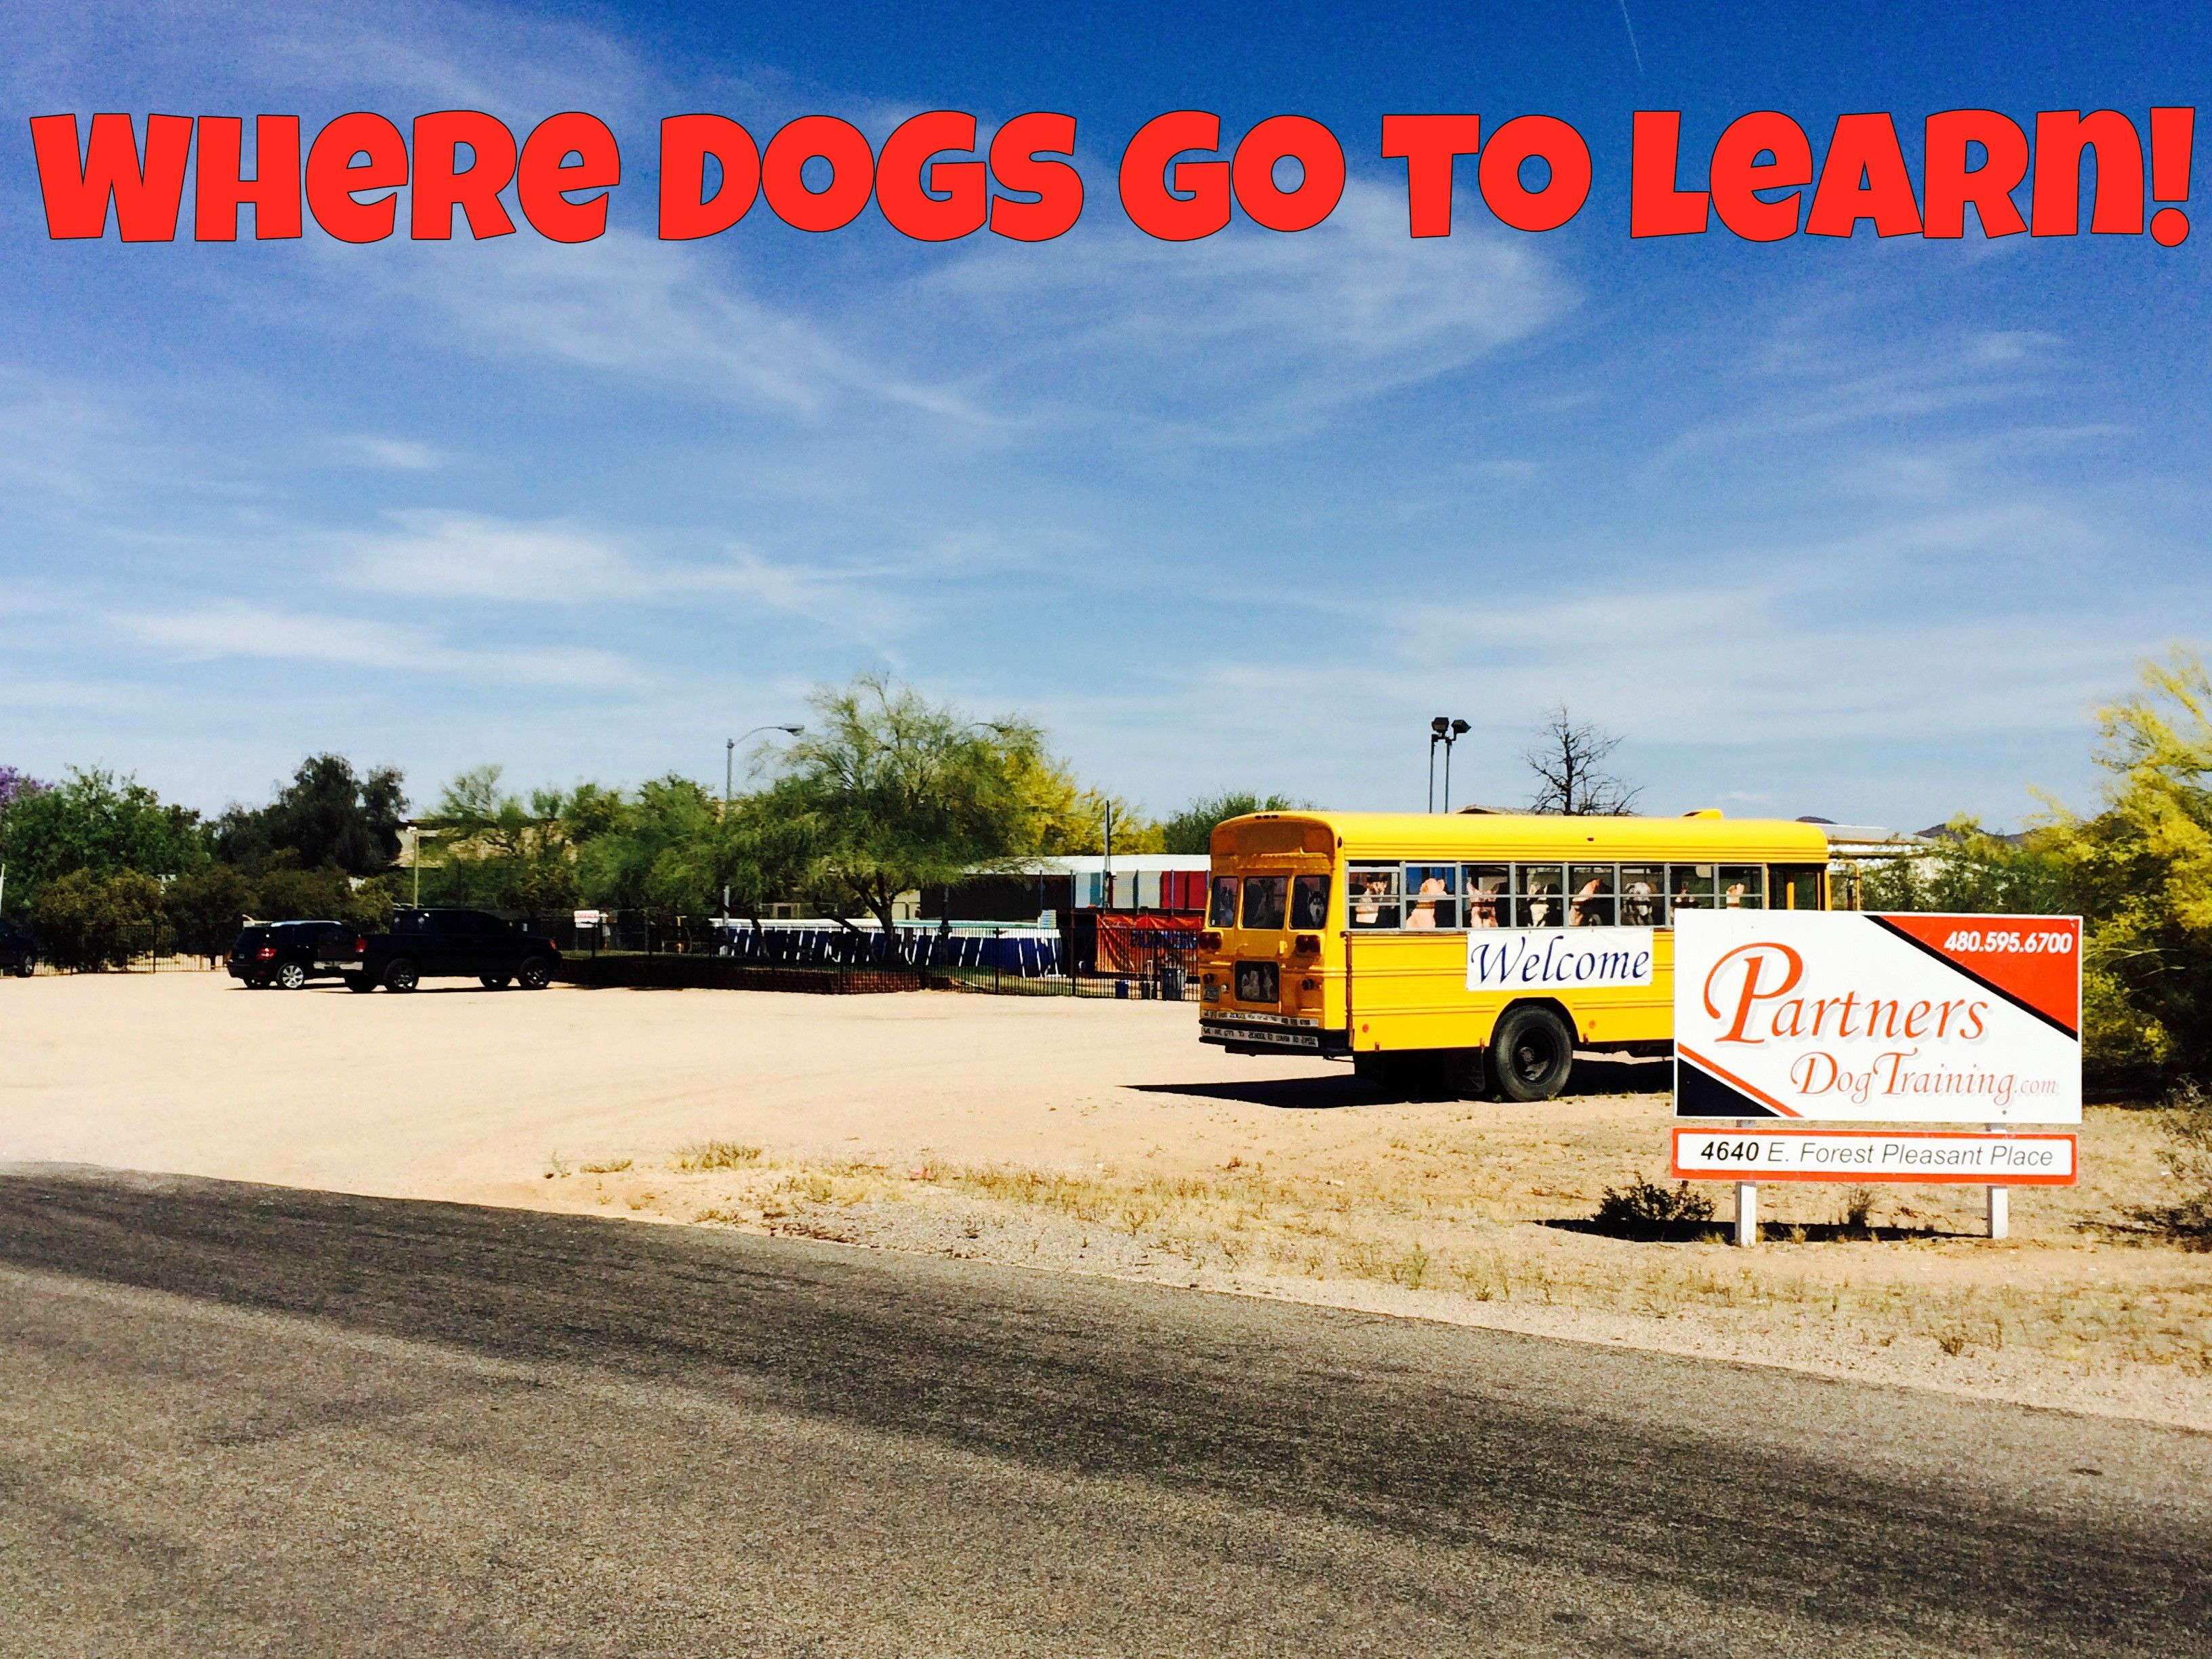 Here Is A Street View Of Partners Dog Training School Just North